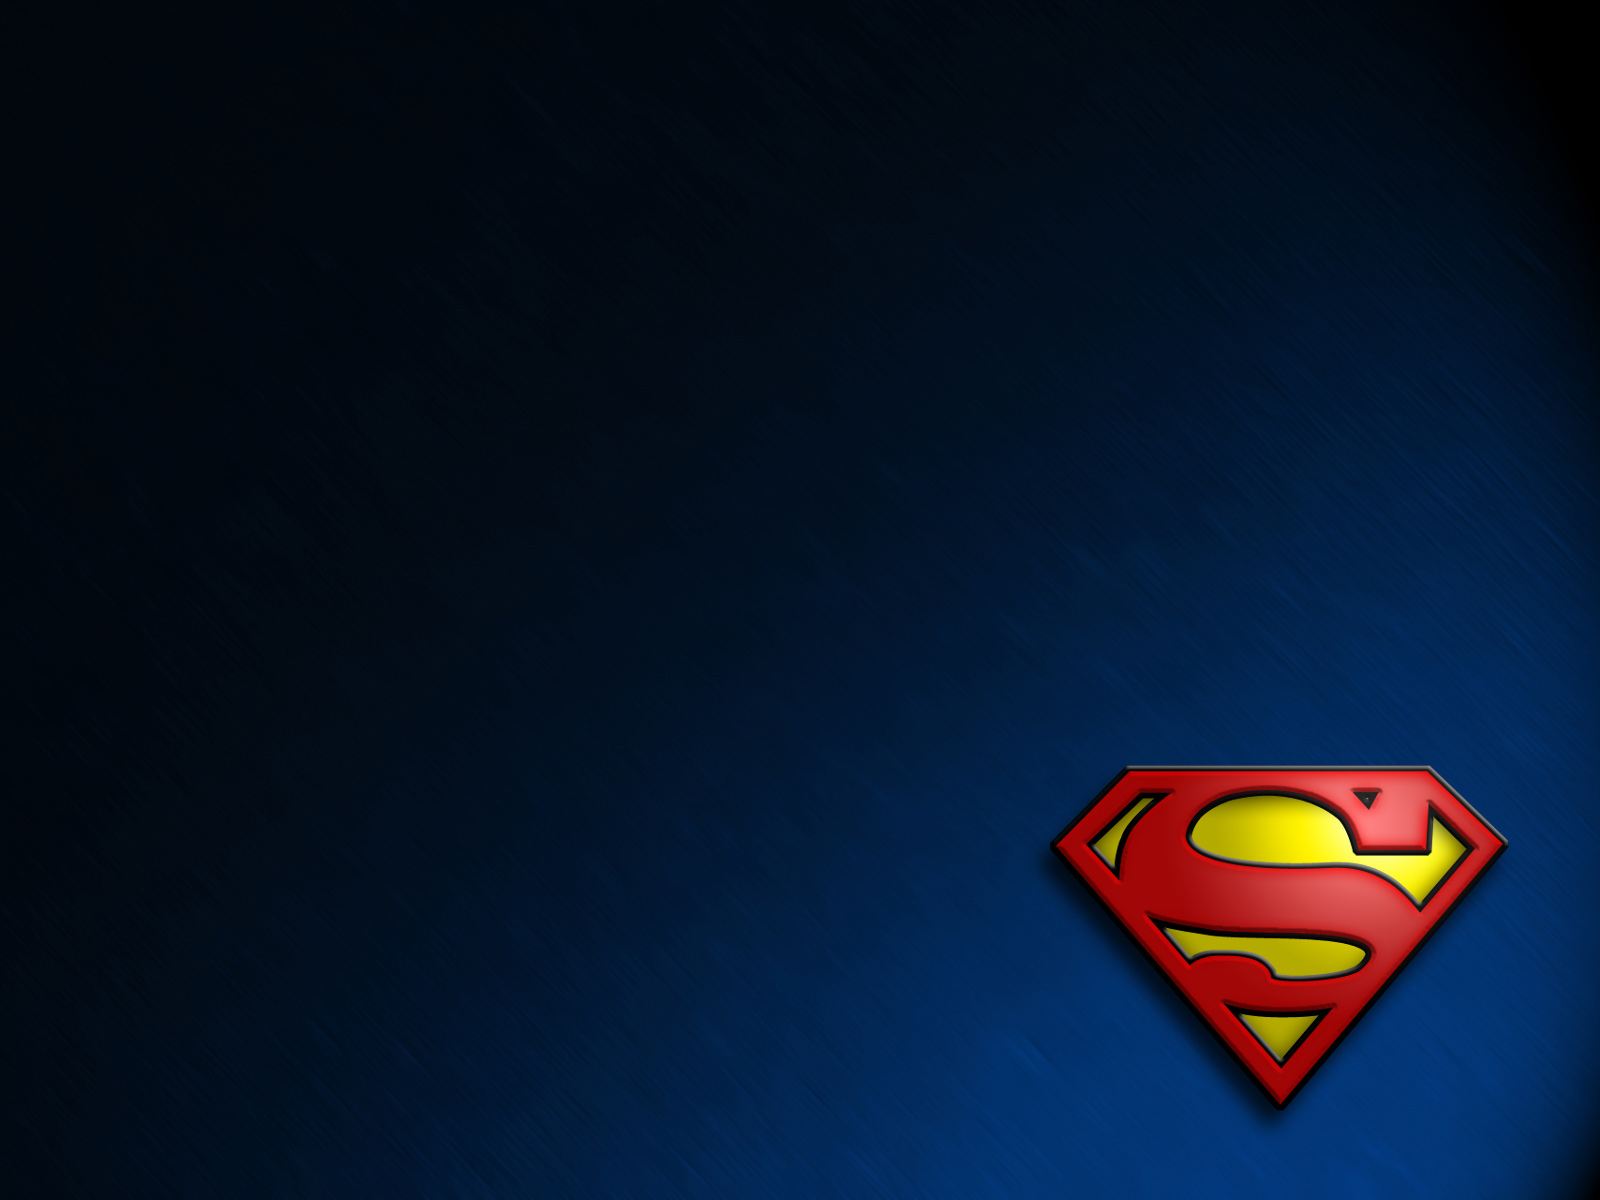 Wallpaperwiki Superman Logo Ipad Desktop Wallpaper Pic Wpe009090